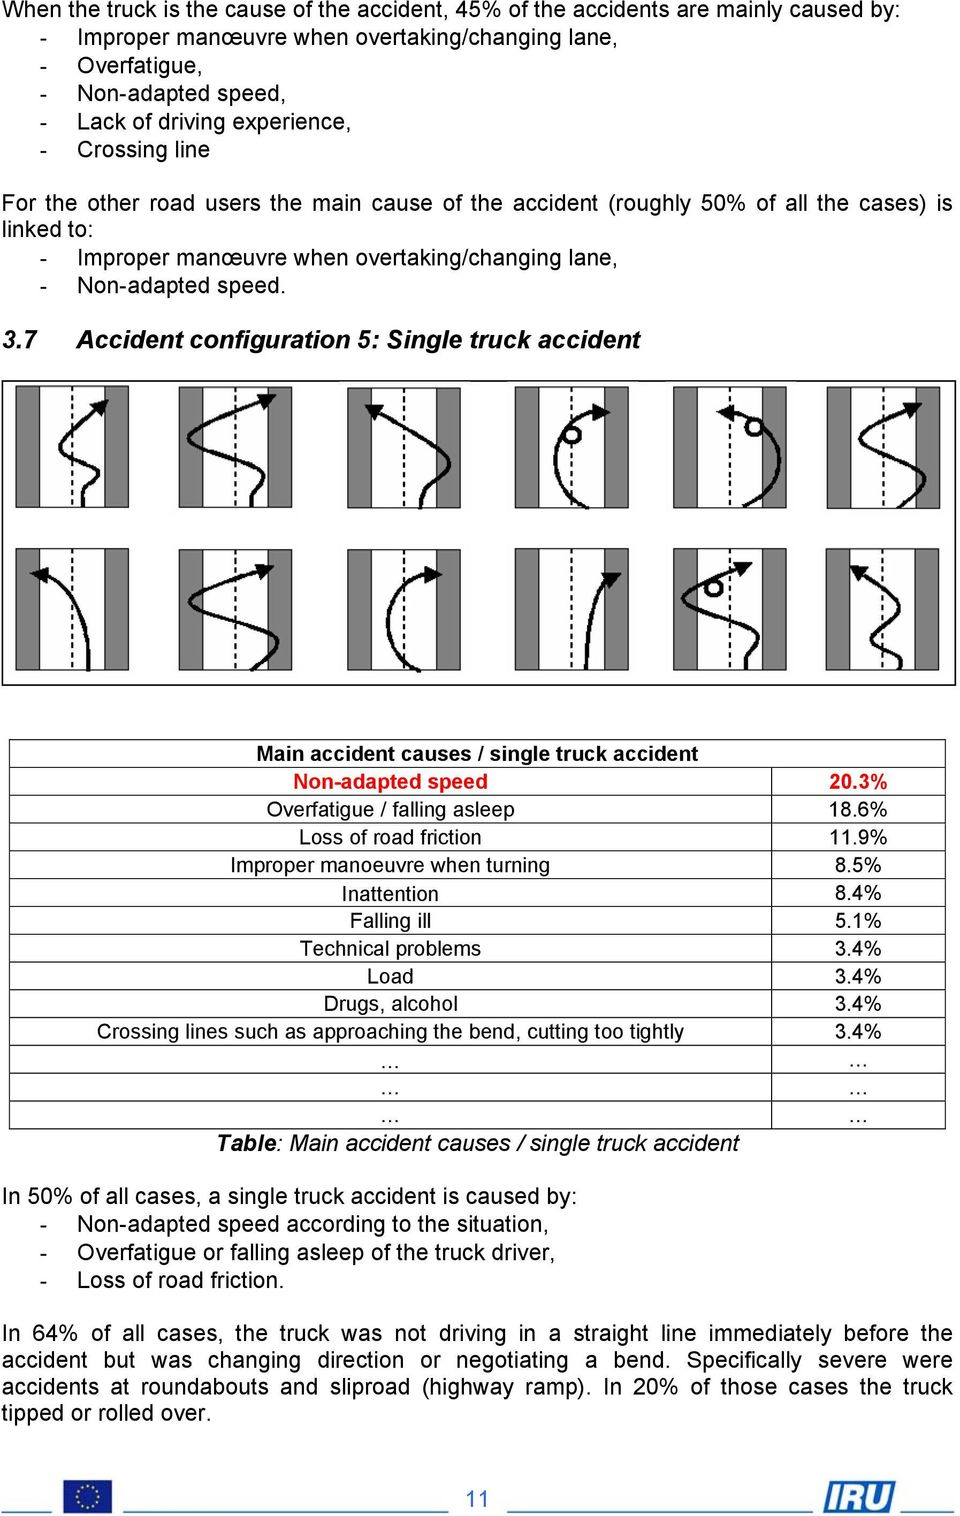 3.7 Accident configuration 5: Single truck accident Main accident causes / single truck accident Non-adapted speed 20.3% Overfatigue / falling asleep 18.6% Loss of road friction 11.